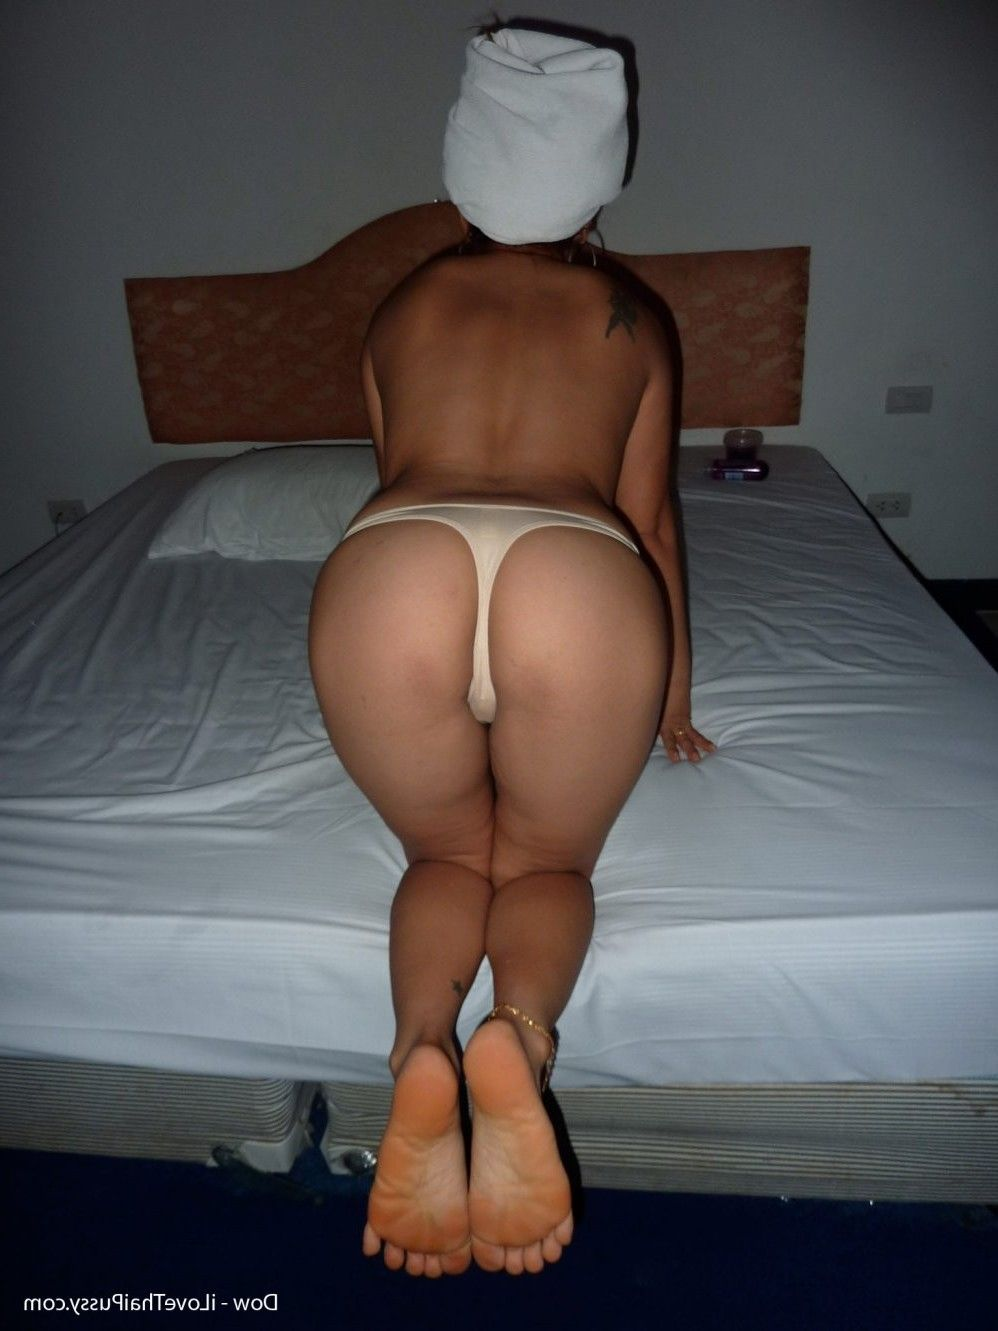 escorttjej privat massage göteborg